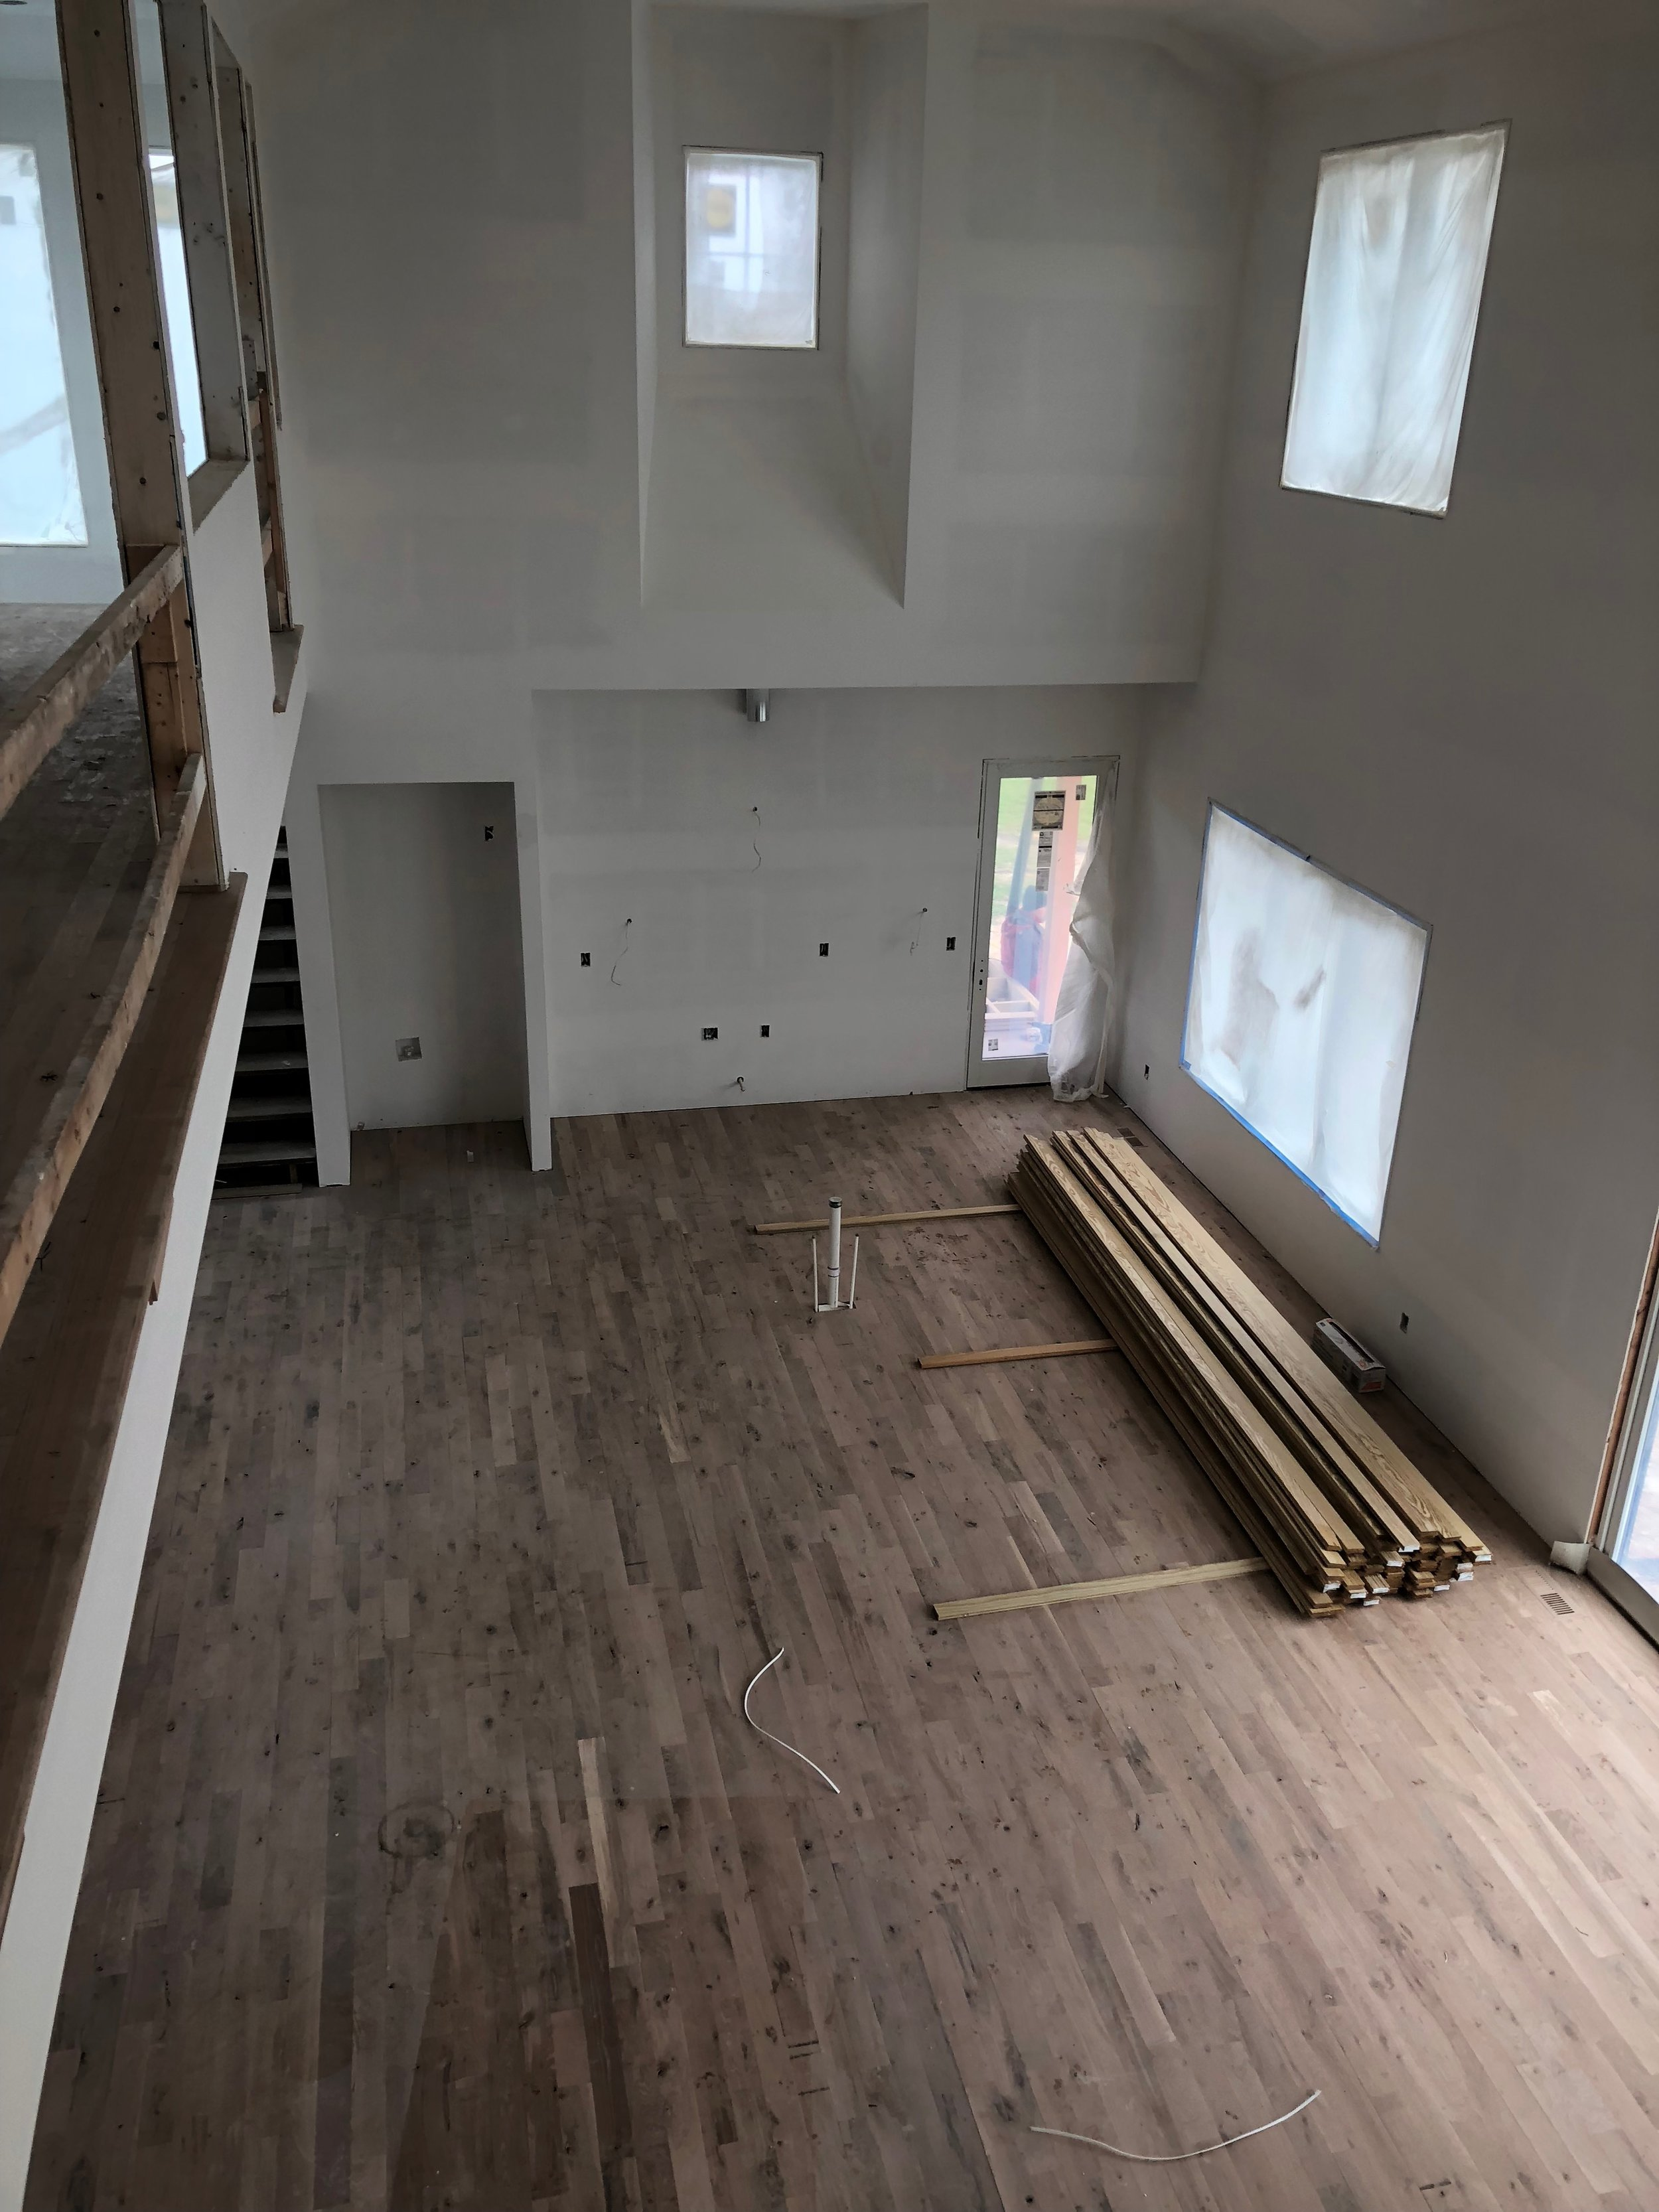 Looking down from the upstairs loft on the great room floors. The #2 quarter sawn oak looks awesome!